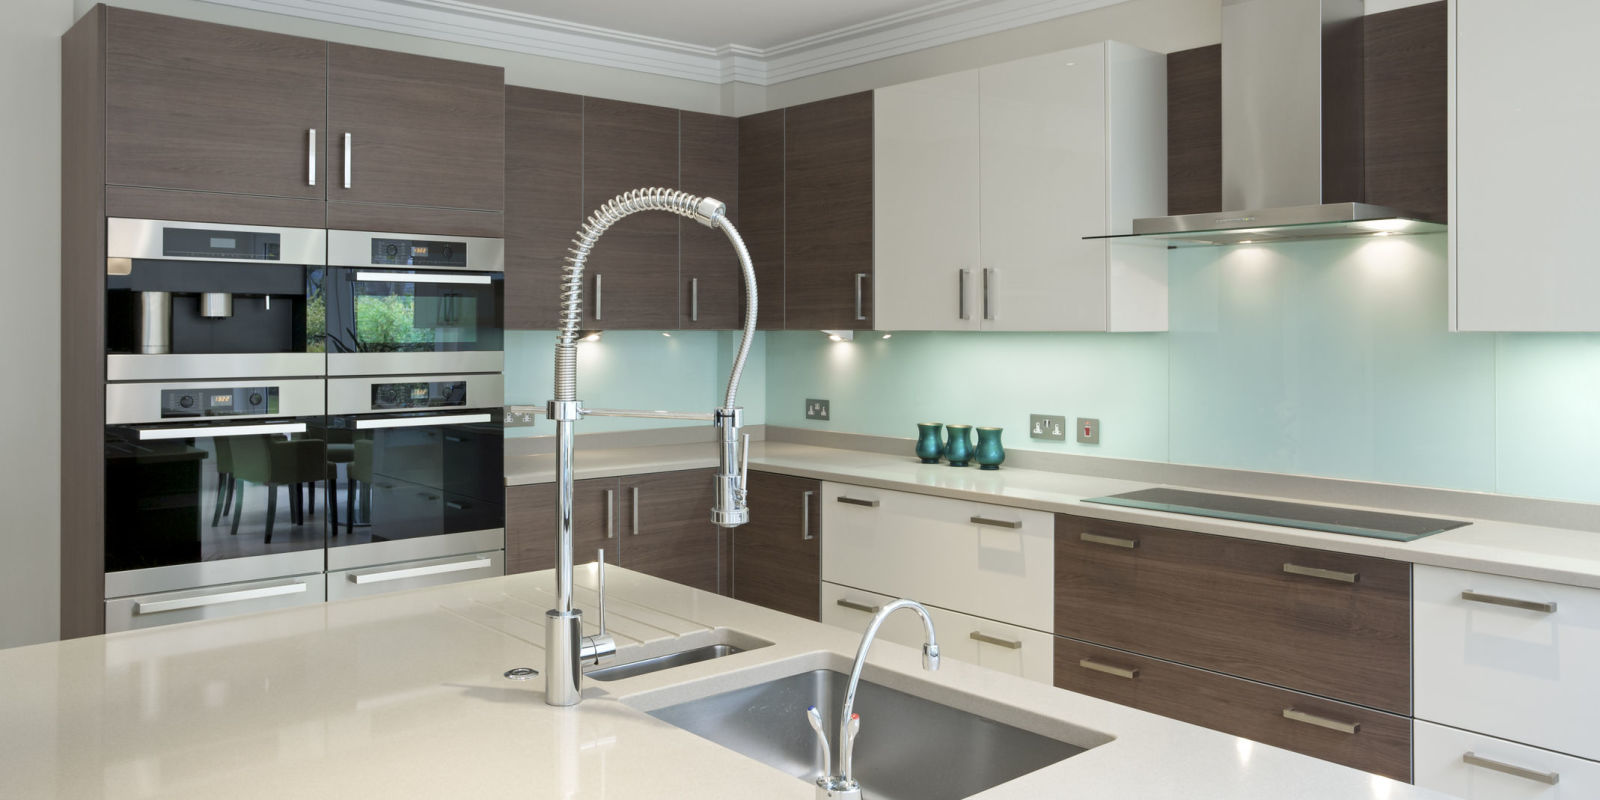 Kitchen Colour Scheme Ideas How To Decorate Your Kitchen Trends Colour Scheme And Style